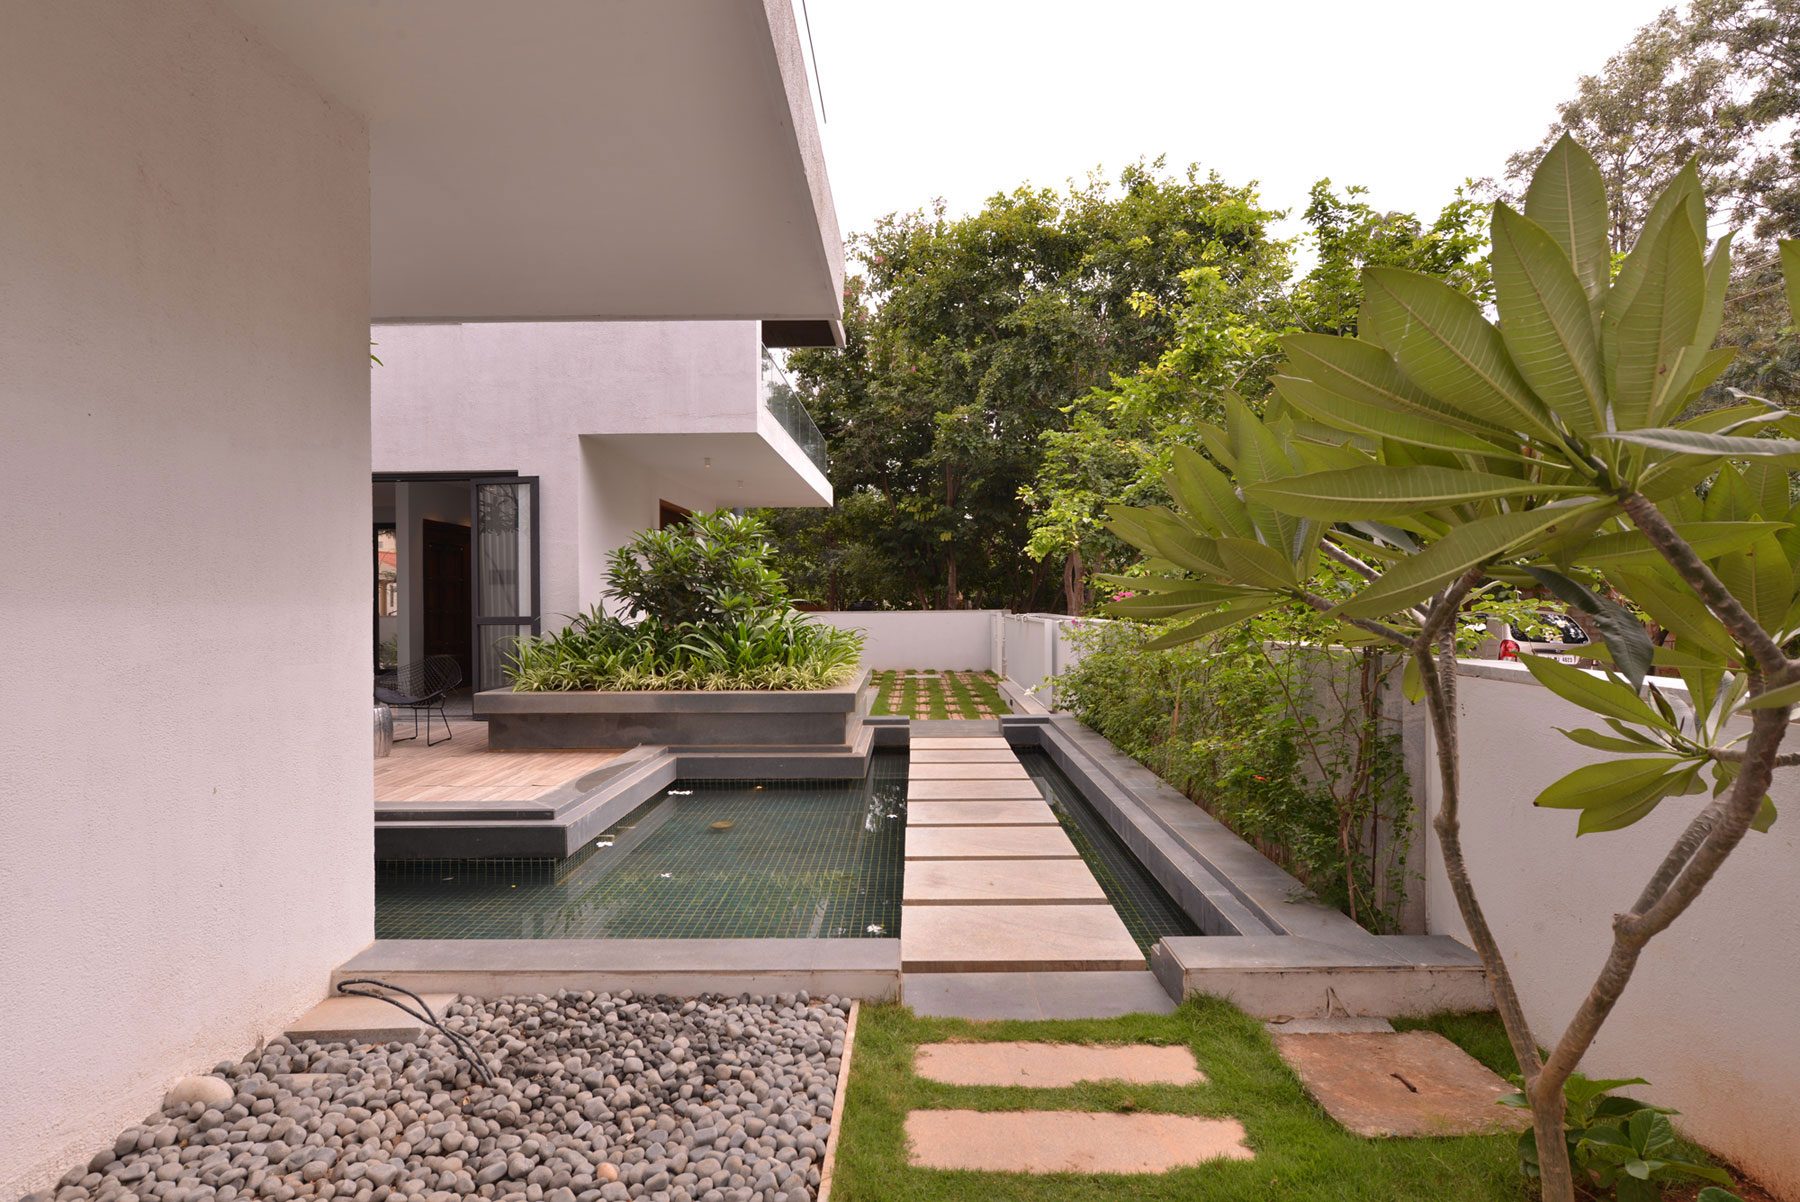 The courtyard house near bangalore by abin design studio for Courtyard houses design ideas